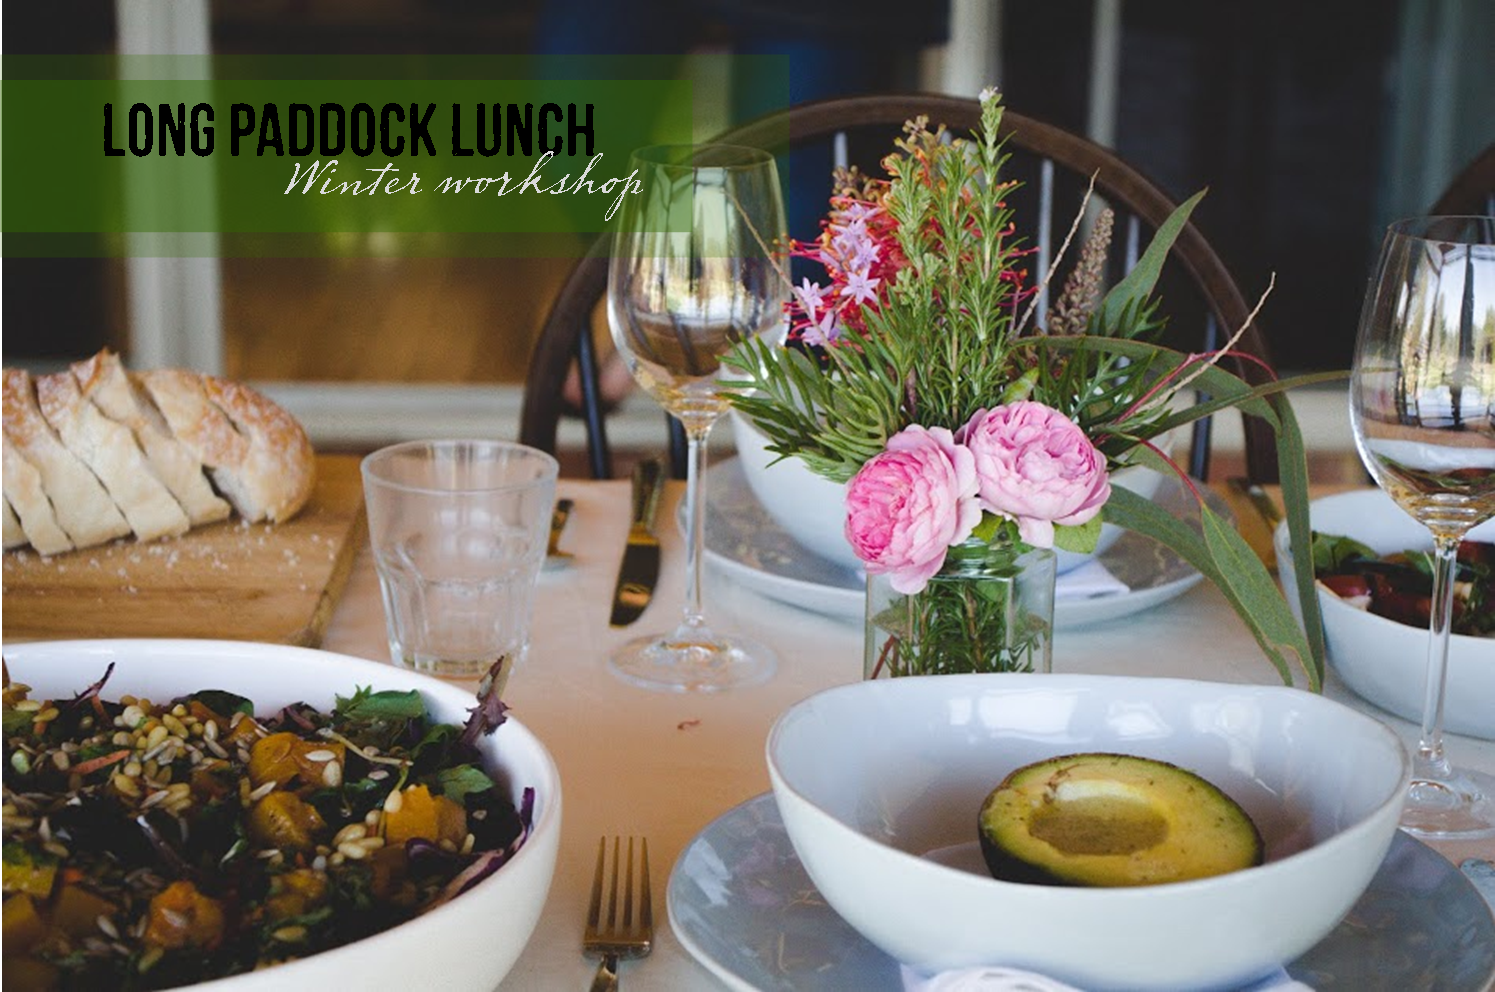 Long Paddock Lunch - winter workshop